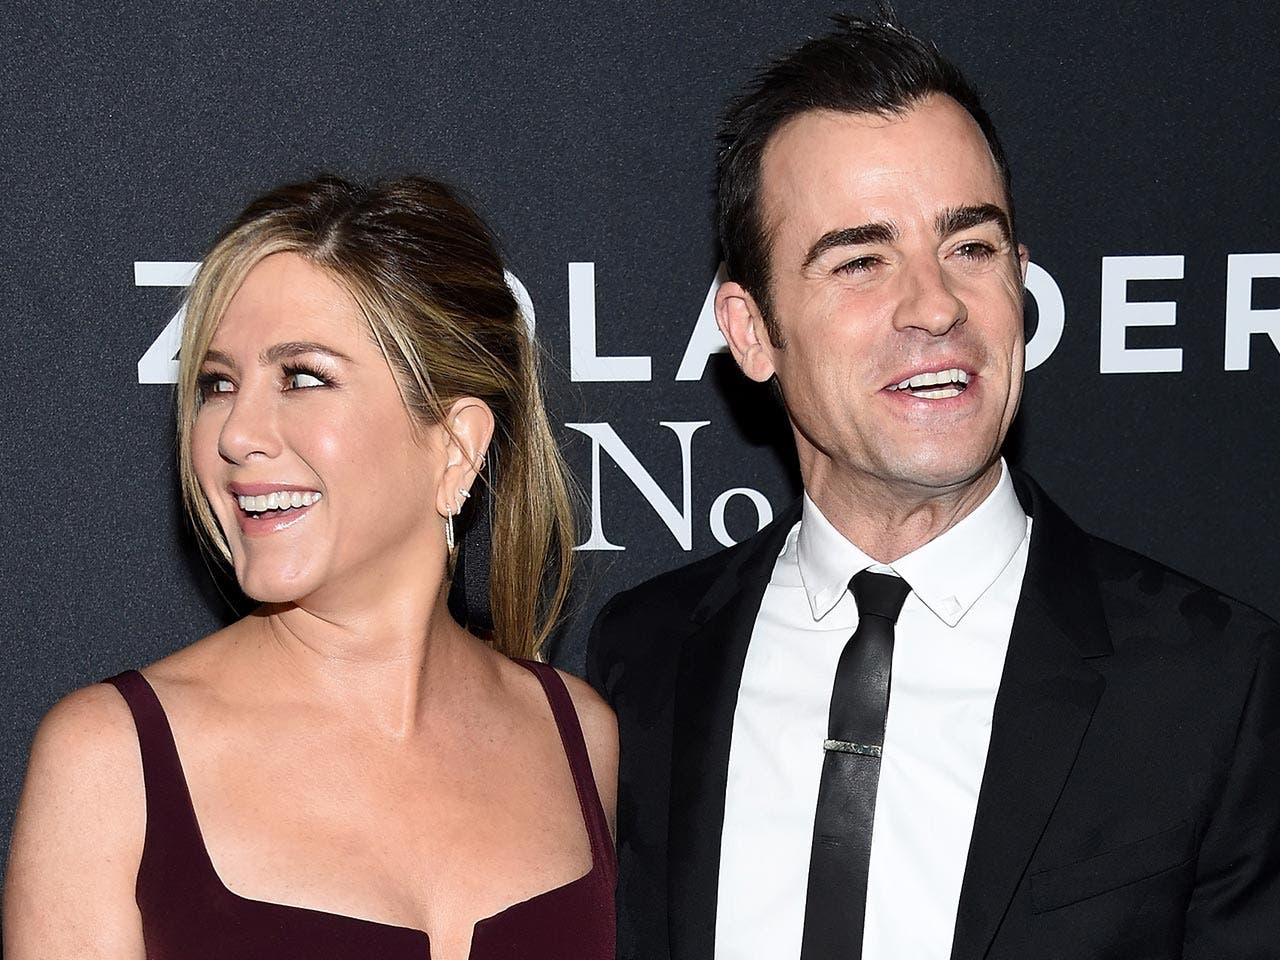 Jennifer Aniston and Justin Theroux | Dimitrios Kambouris/Getty Images